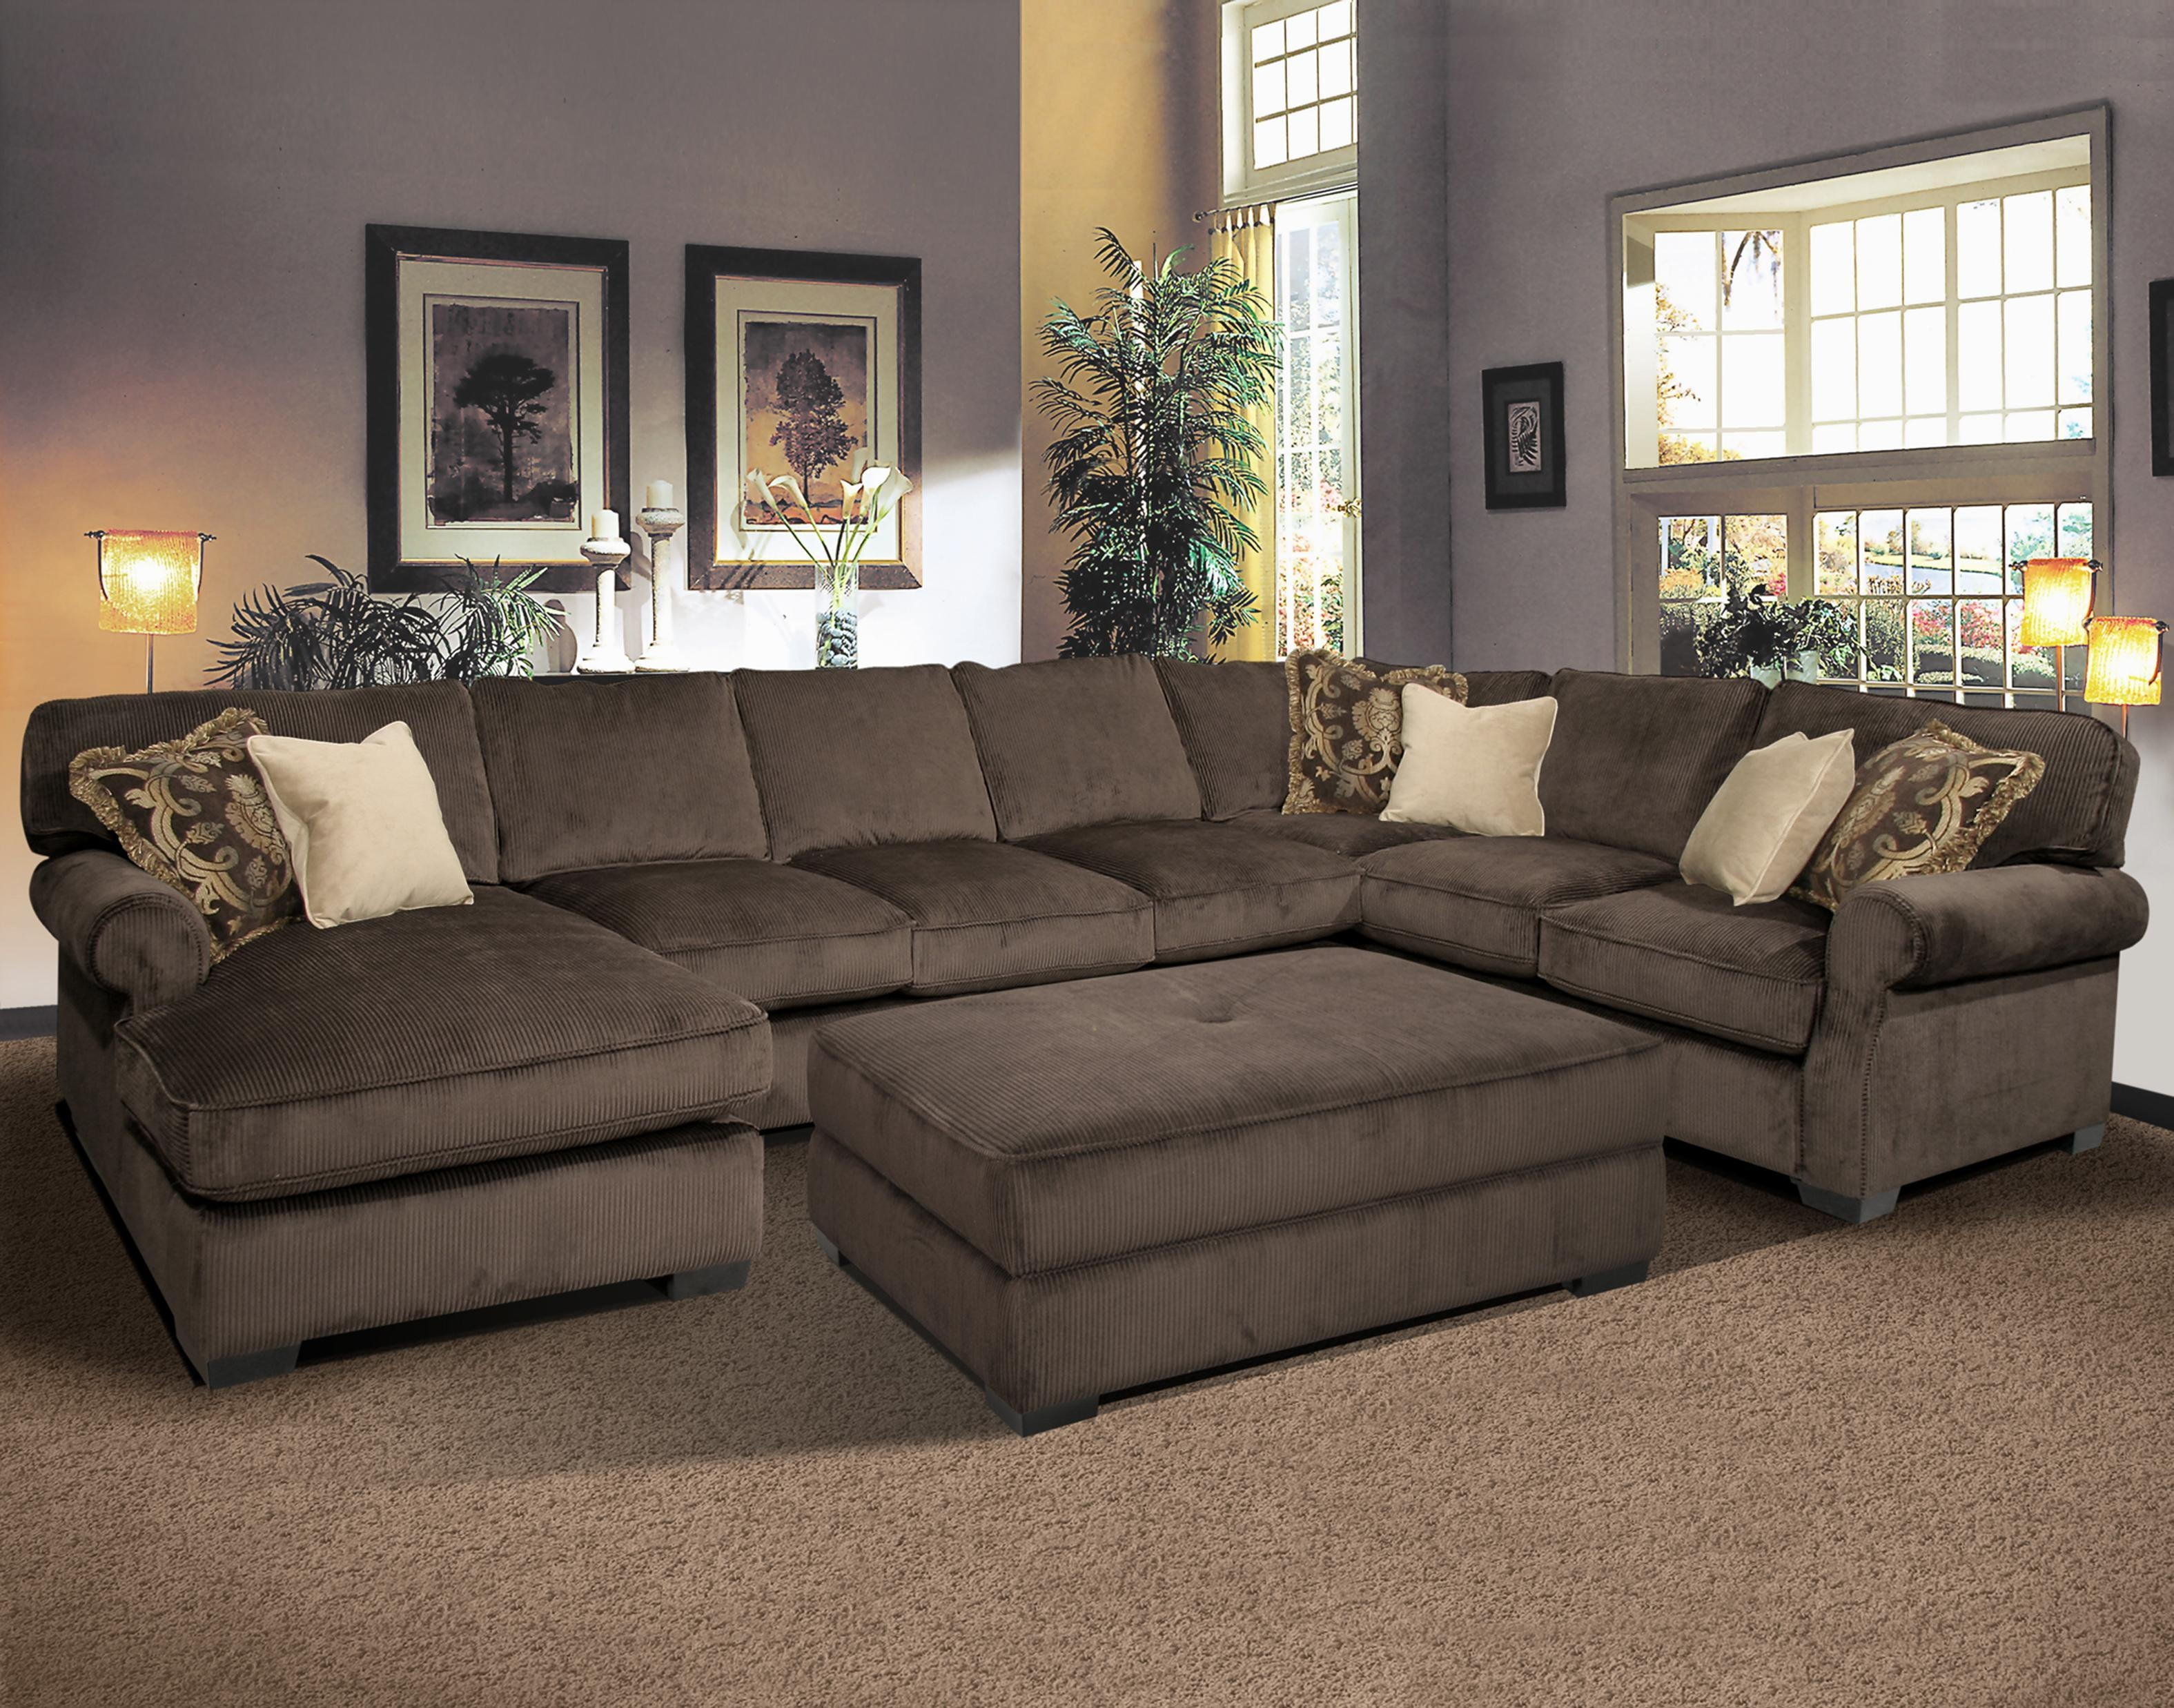 Sofa: Outstanding Deep Sectional Sofa 2017 Ideas Cheap Sectional For Large Comfortable Sectional Sofas (Image 19 of 20)